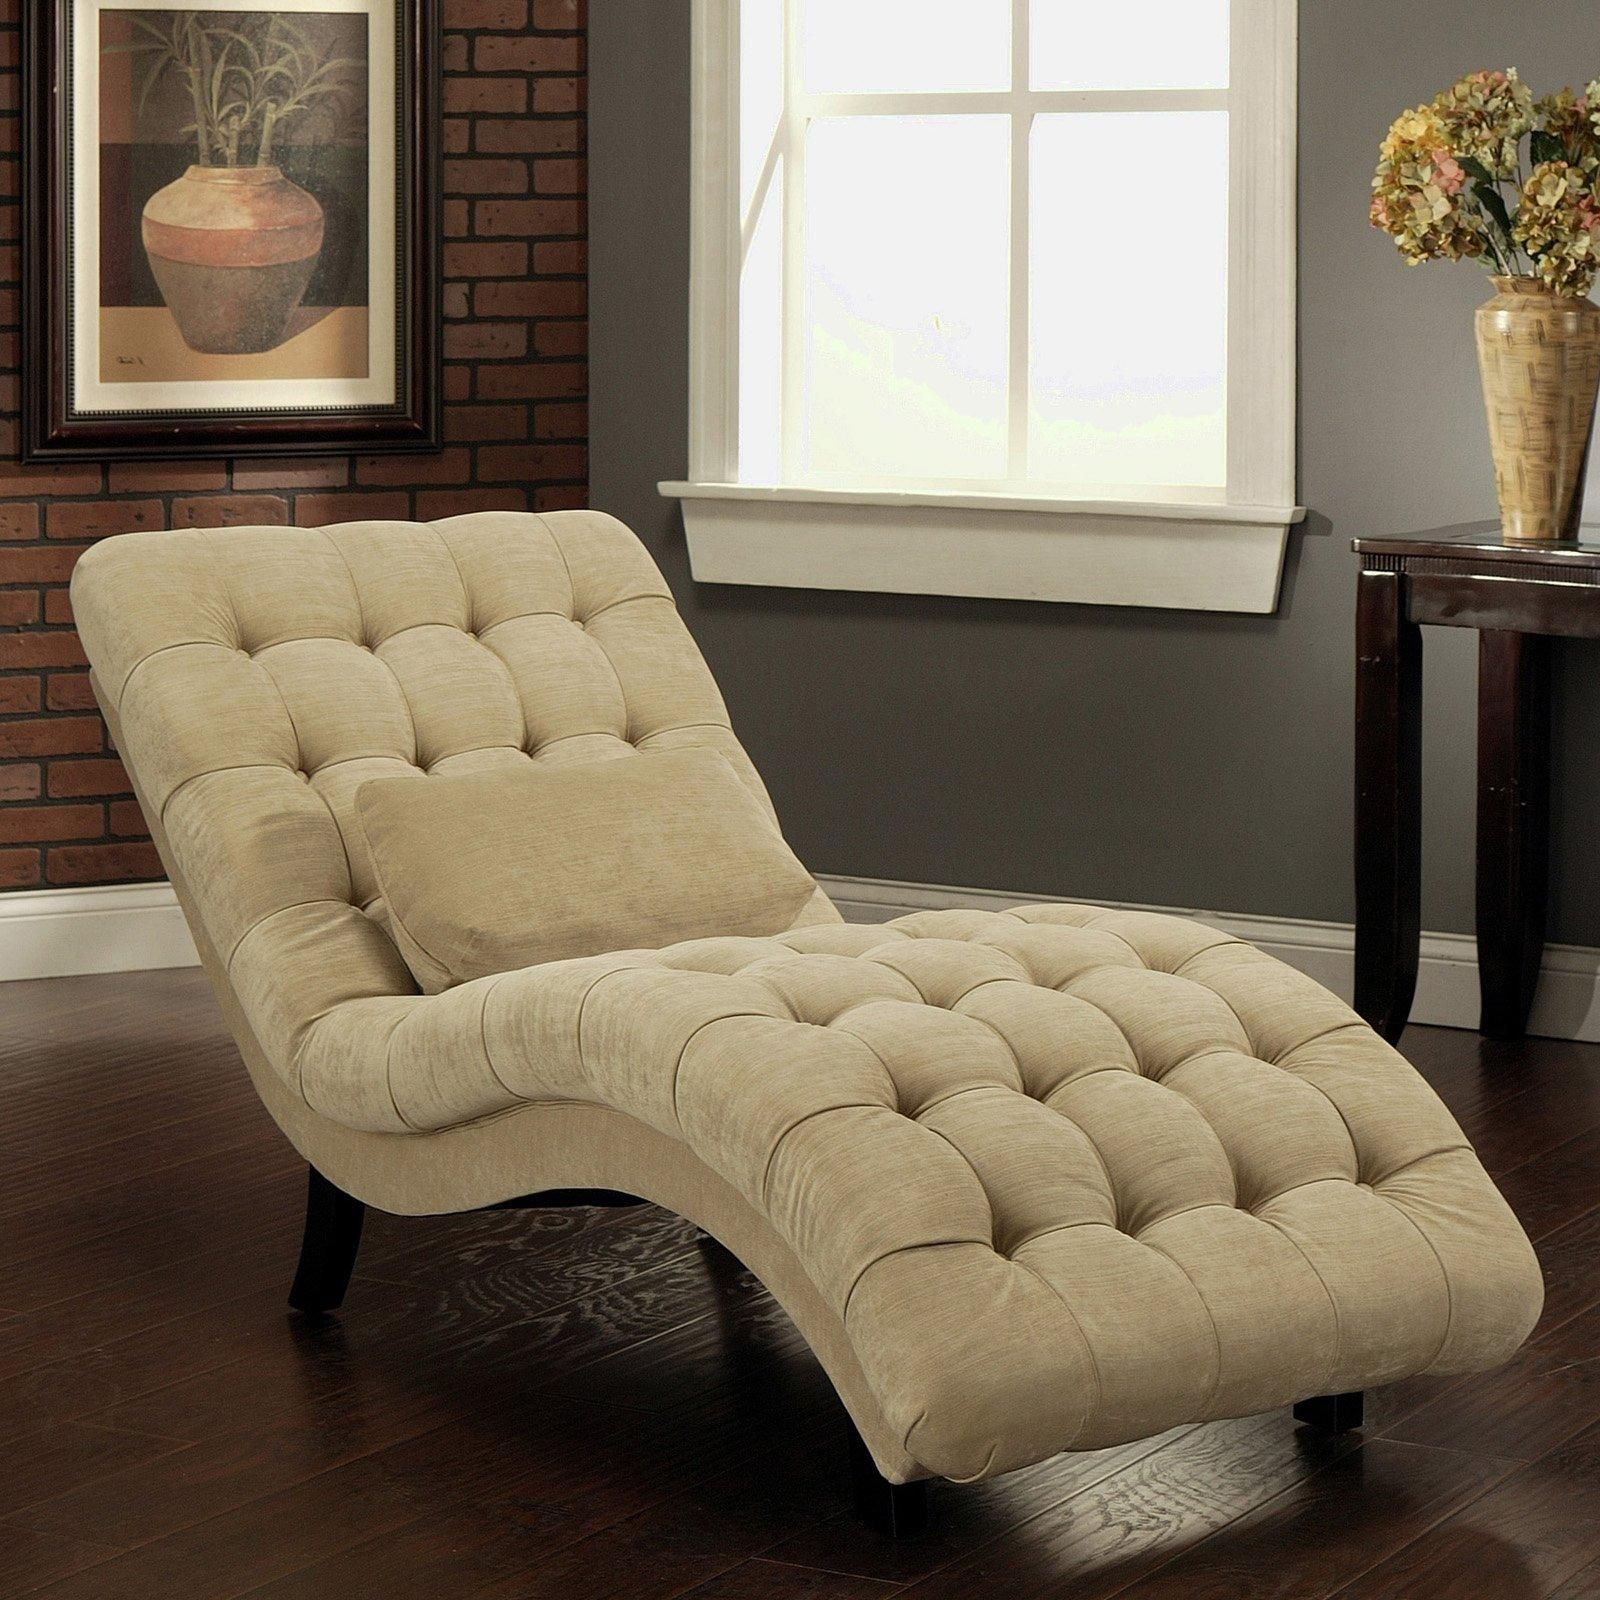 Chaise Lounge Home Decor Indoor